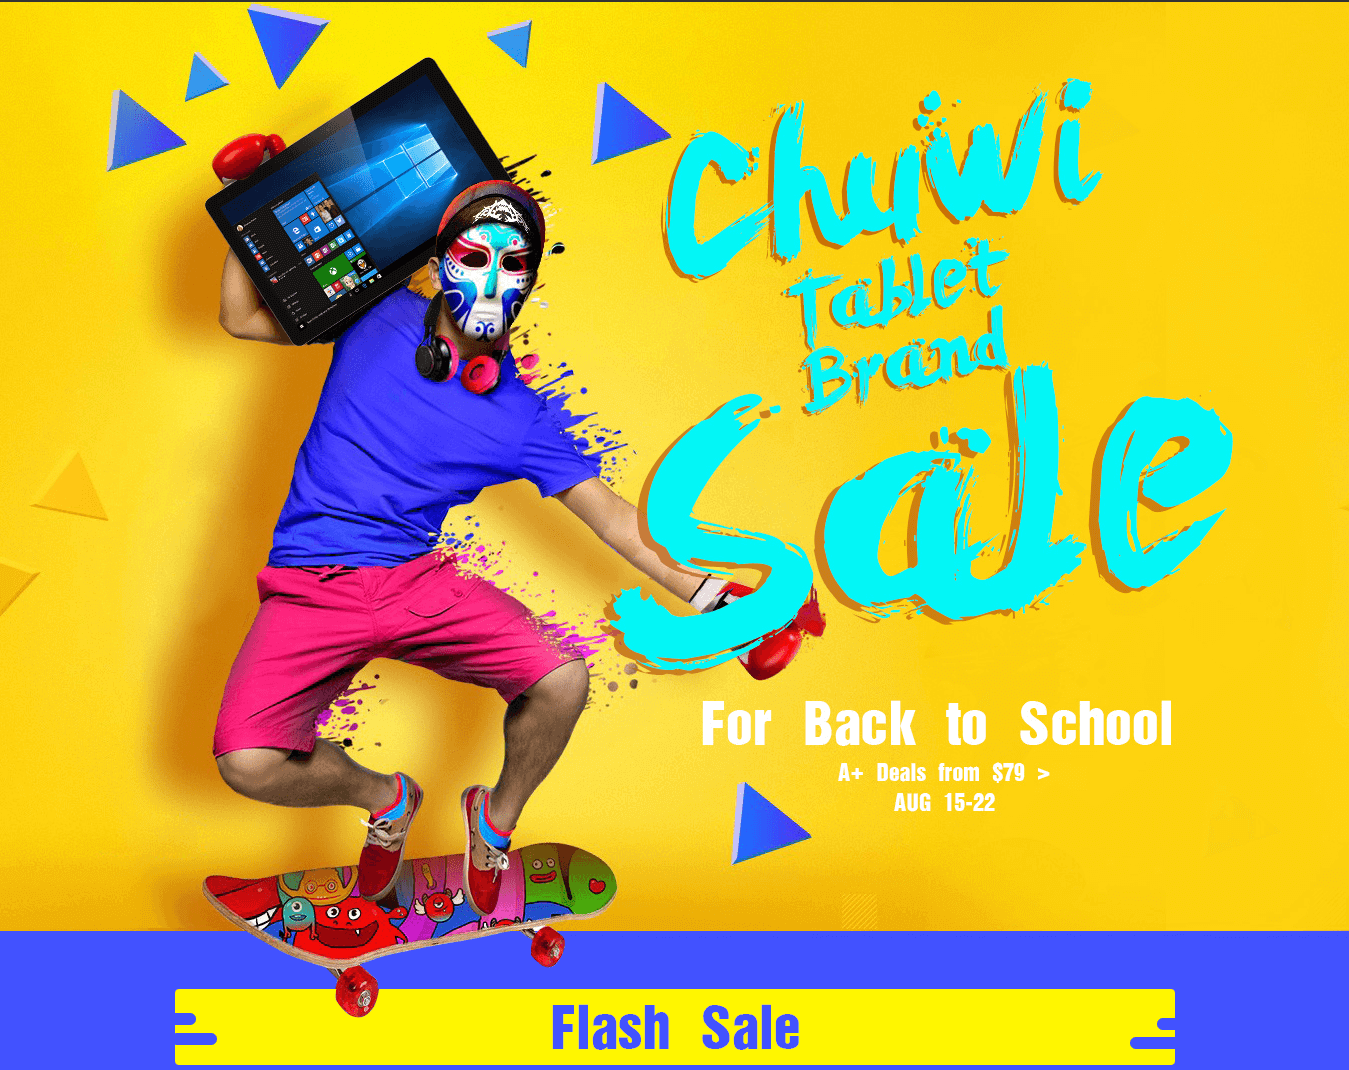 Chuwi tablet Brand Sale On Gearbest